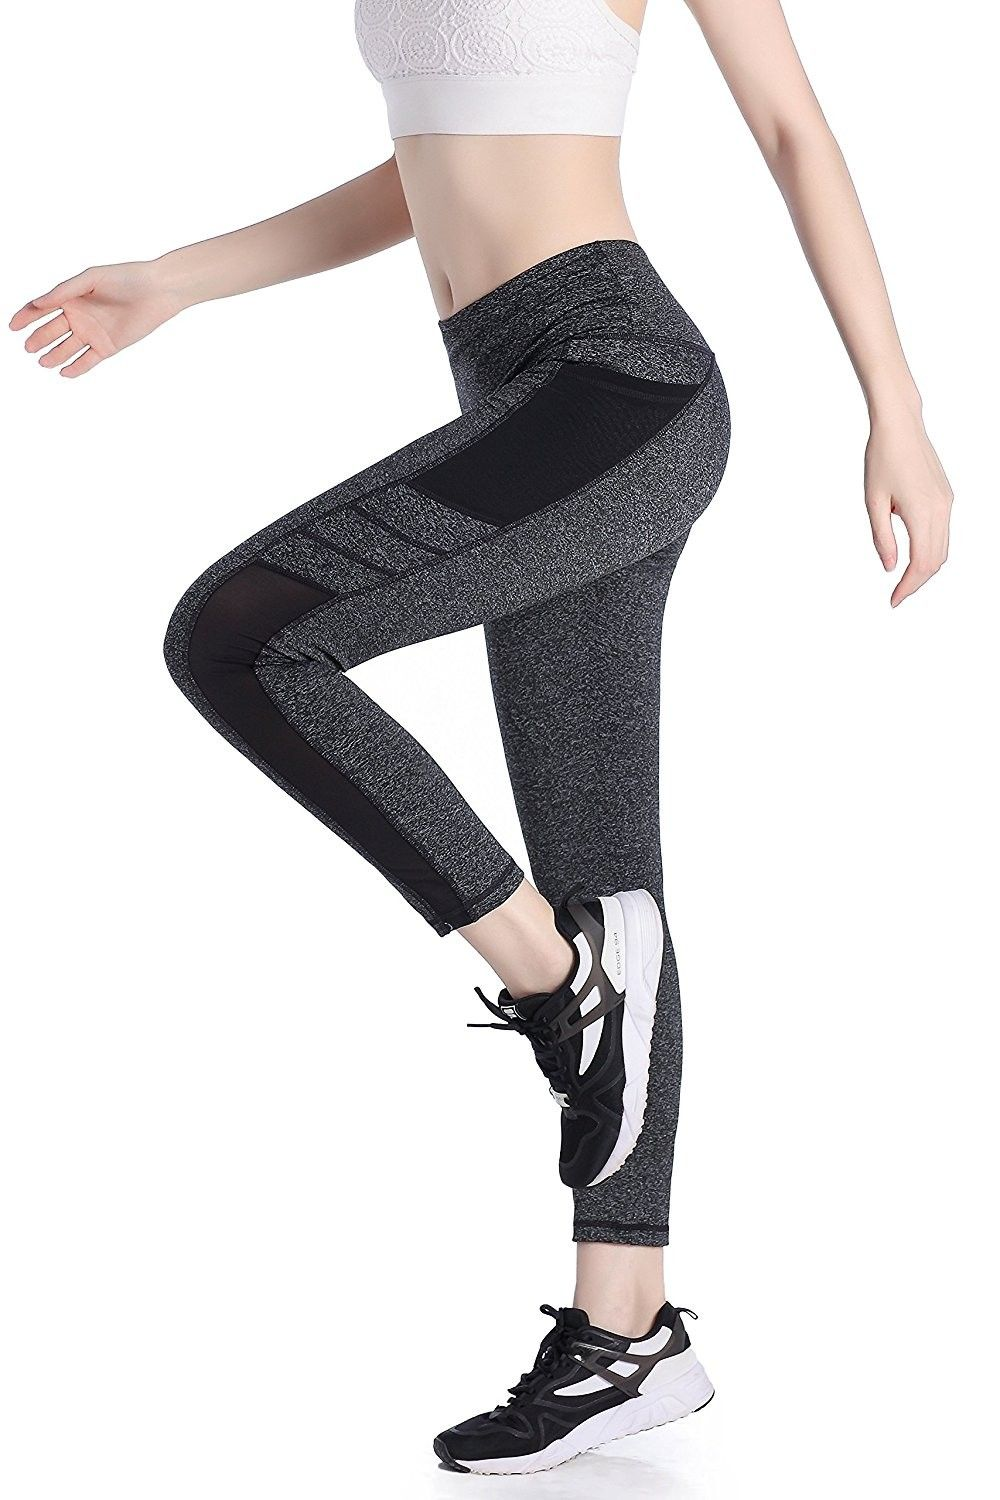 ef8fe0865621fe Women's Mesh Yoga Pants Sports Tights Workout Running Fitness Pants Yoga  Leggings With Side Pocket - Grey - C1187TCAYUO,Women's Clothing, Active, ...